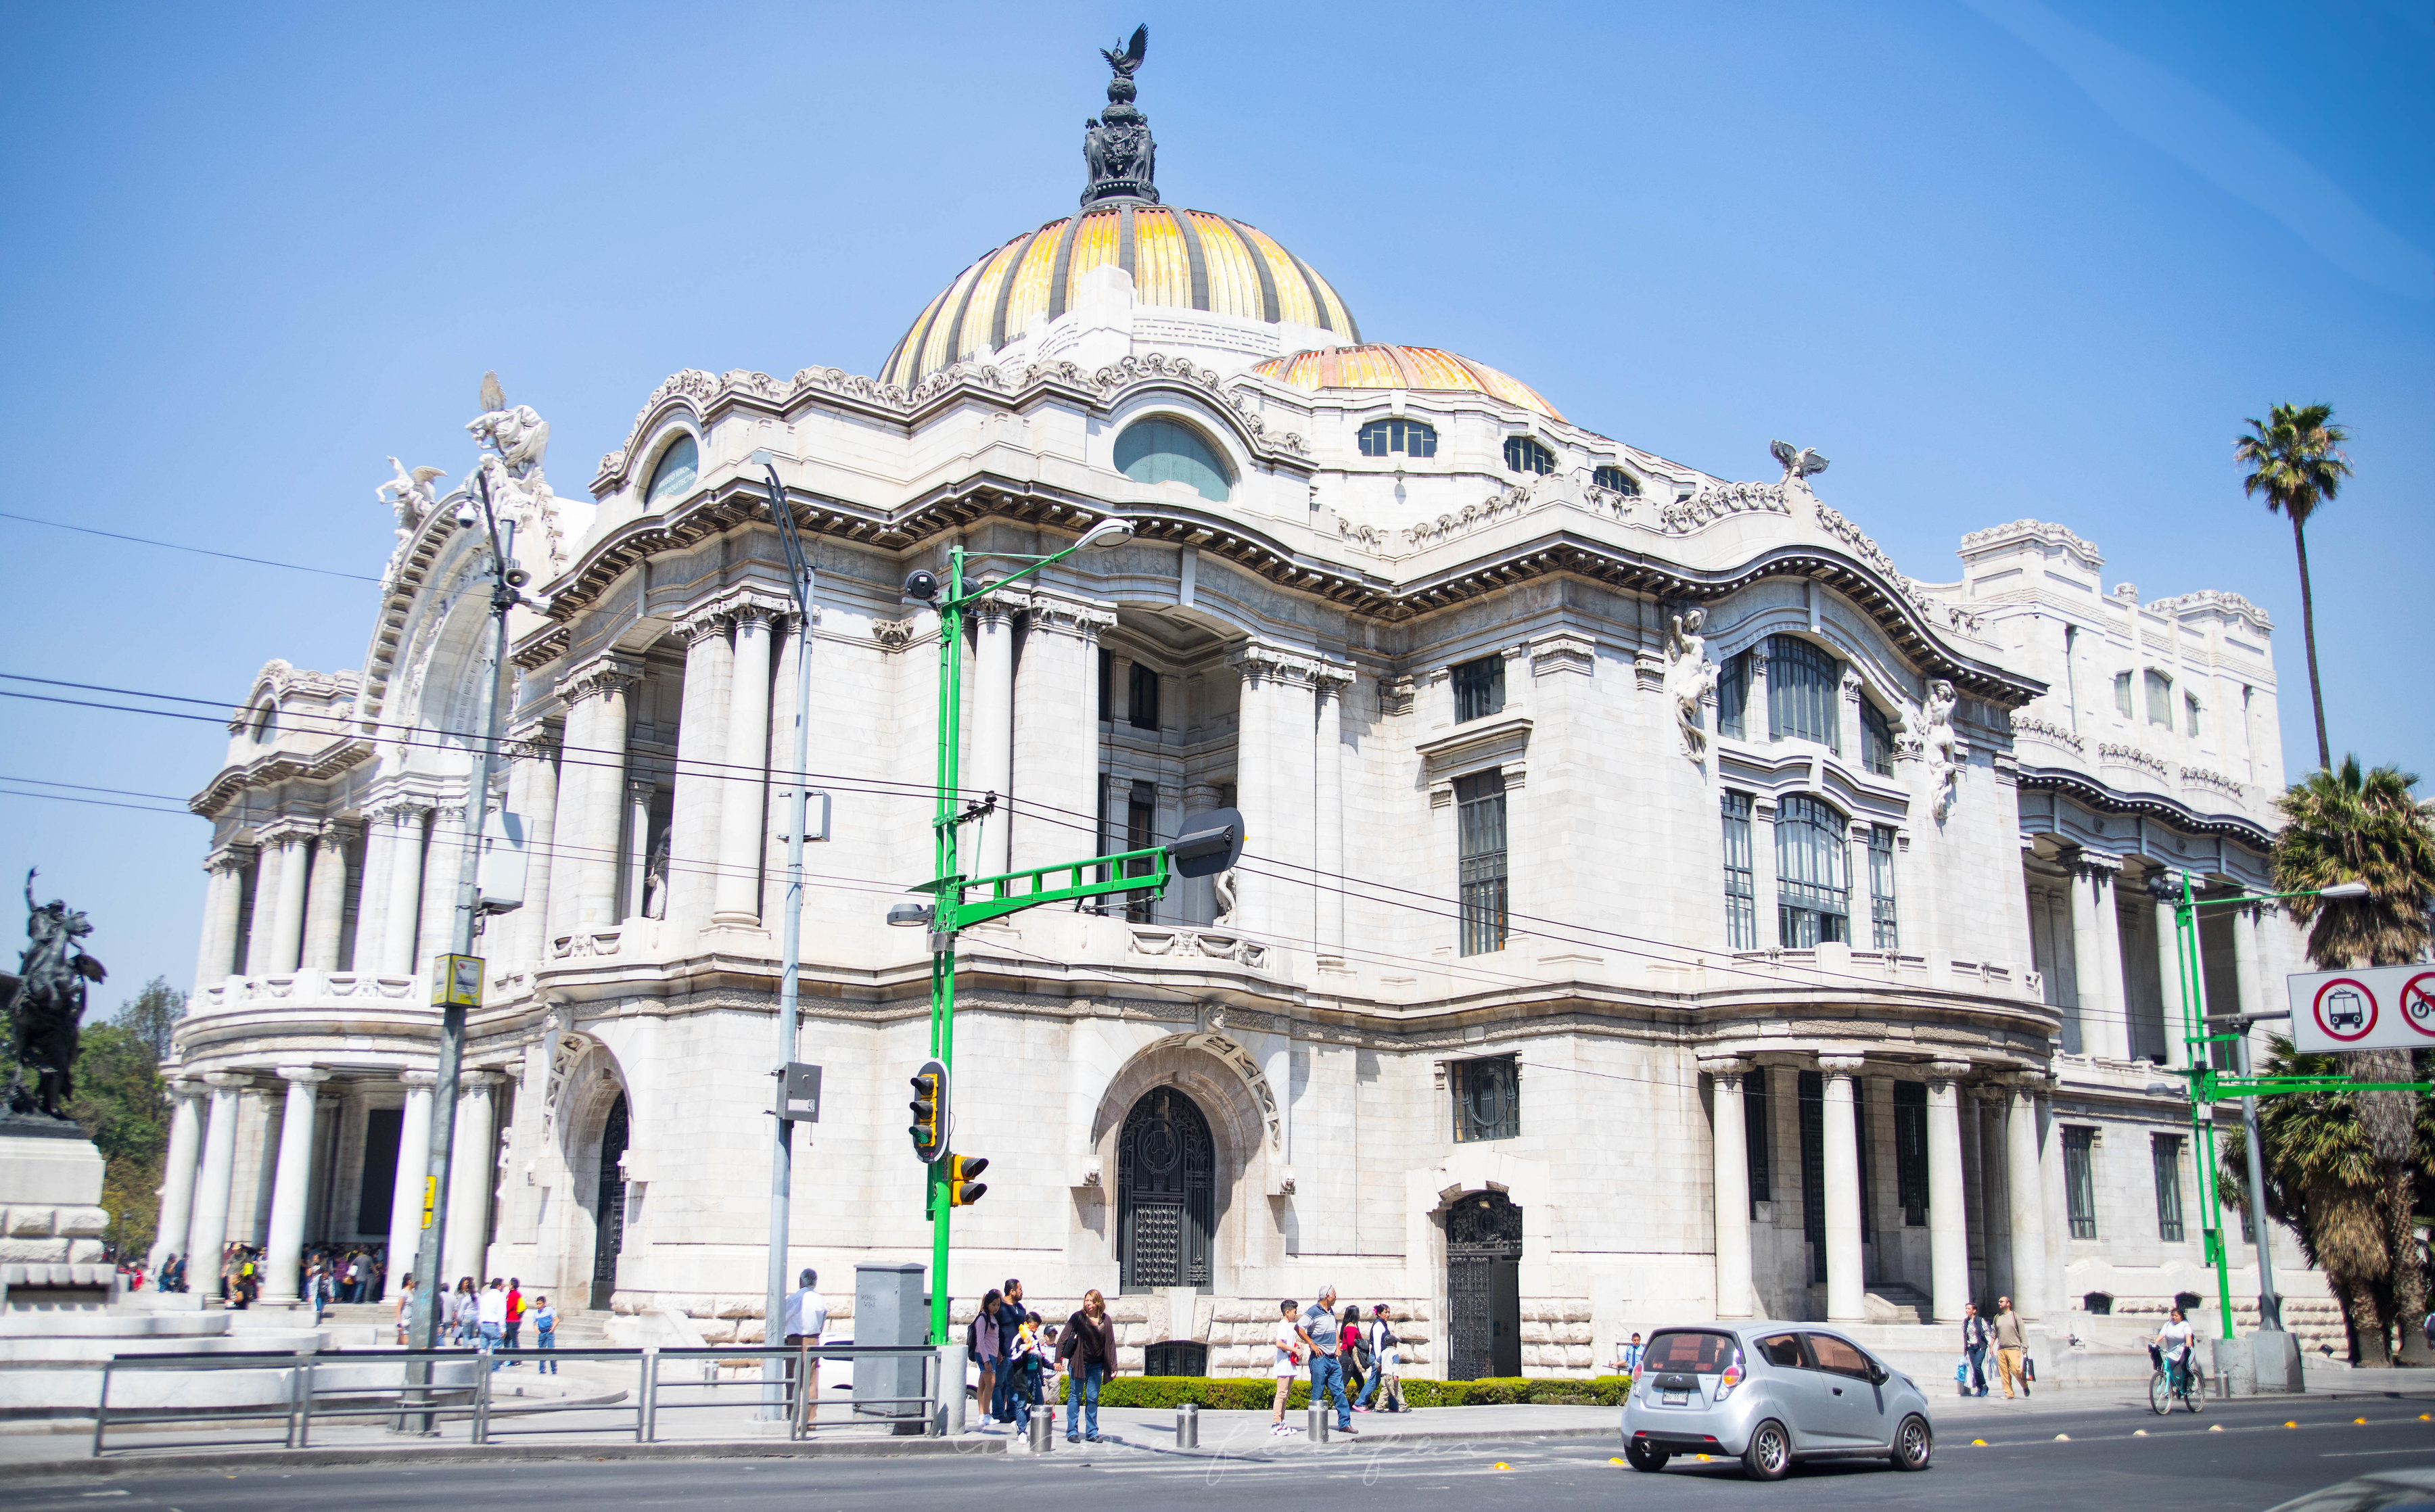 Palacio de Bellas Artes The Complete Traveler's Guide to Mexico City Mexico Where to Stay What to Eat Where to Visit What to Do Places to Avoid How to Stay Safe in Mexico City